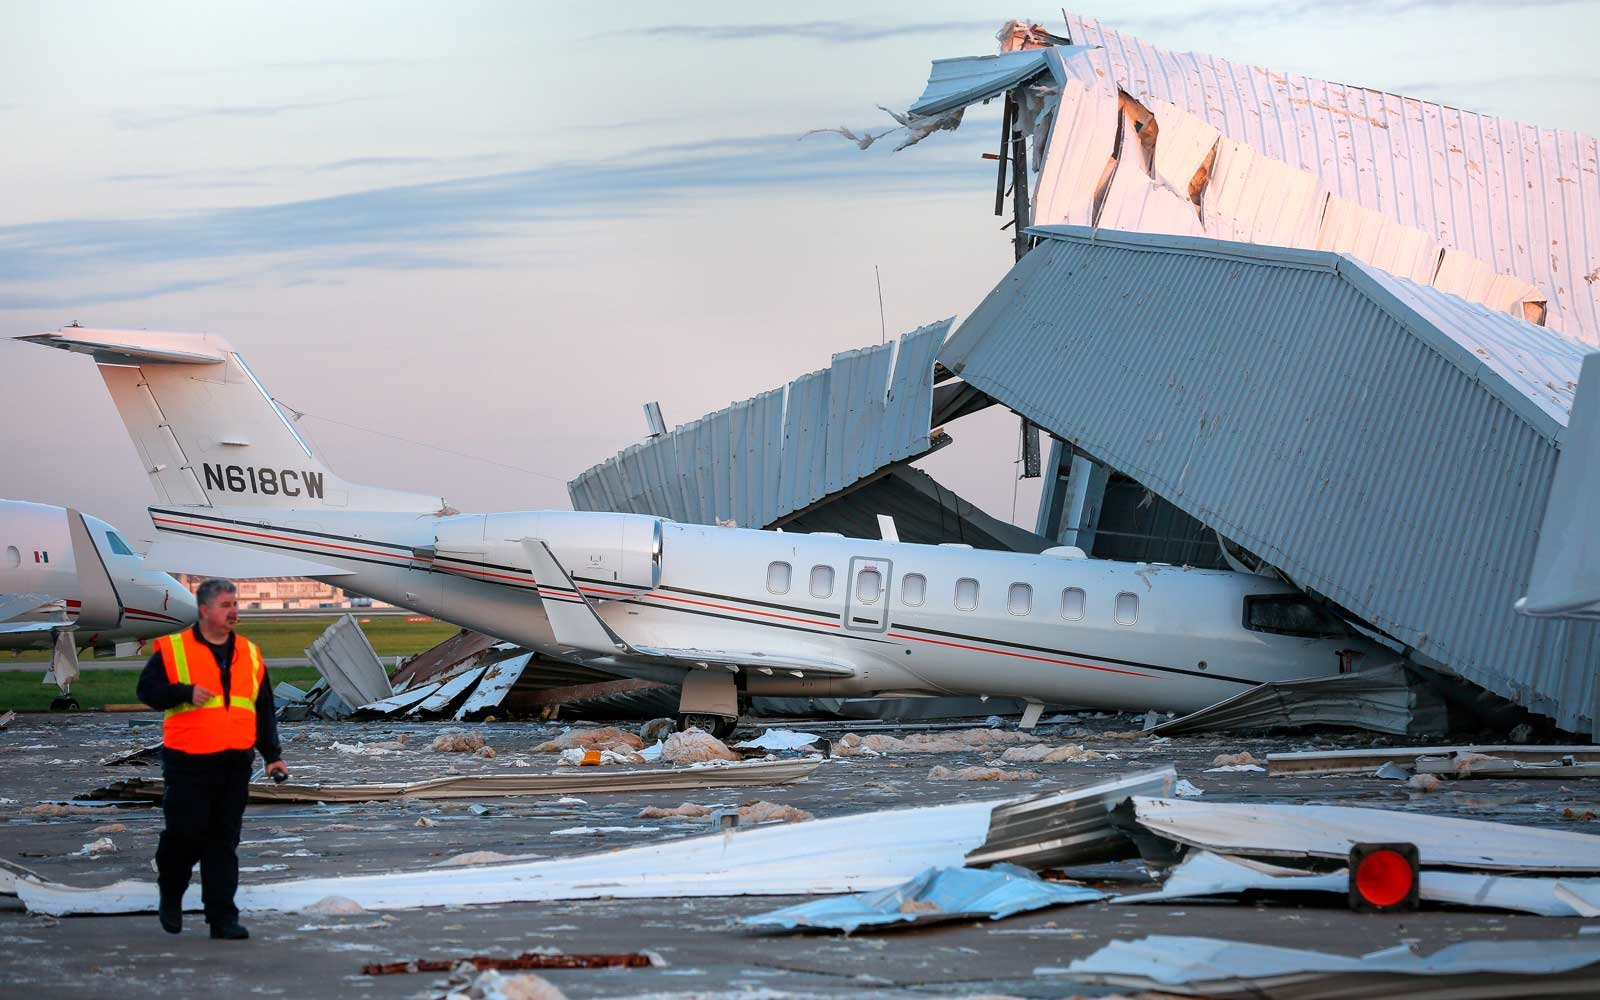 Authorities look over the damage caused by winds at an airplane hangar at William P. Hobby Airport Wednesday, April 4, 2018, in Houston.